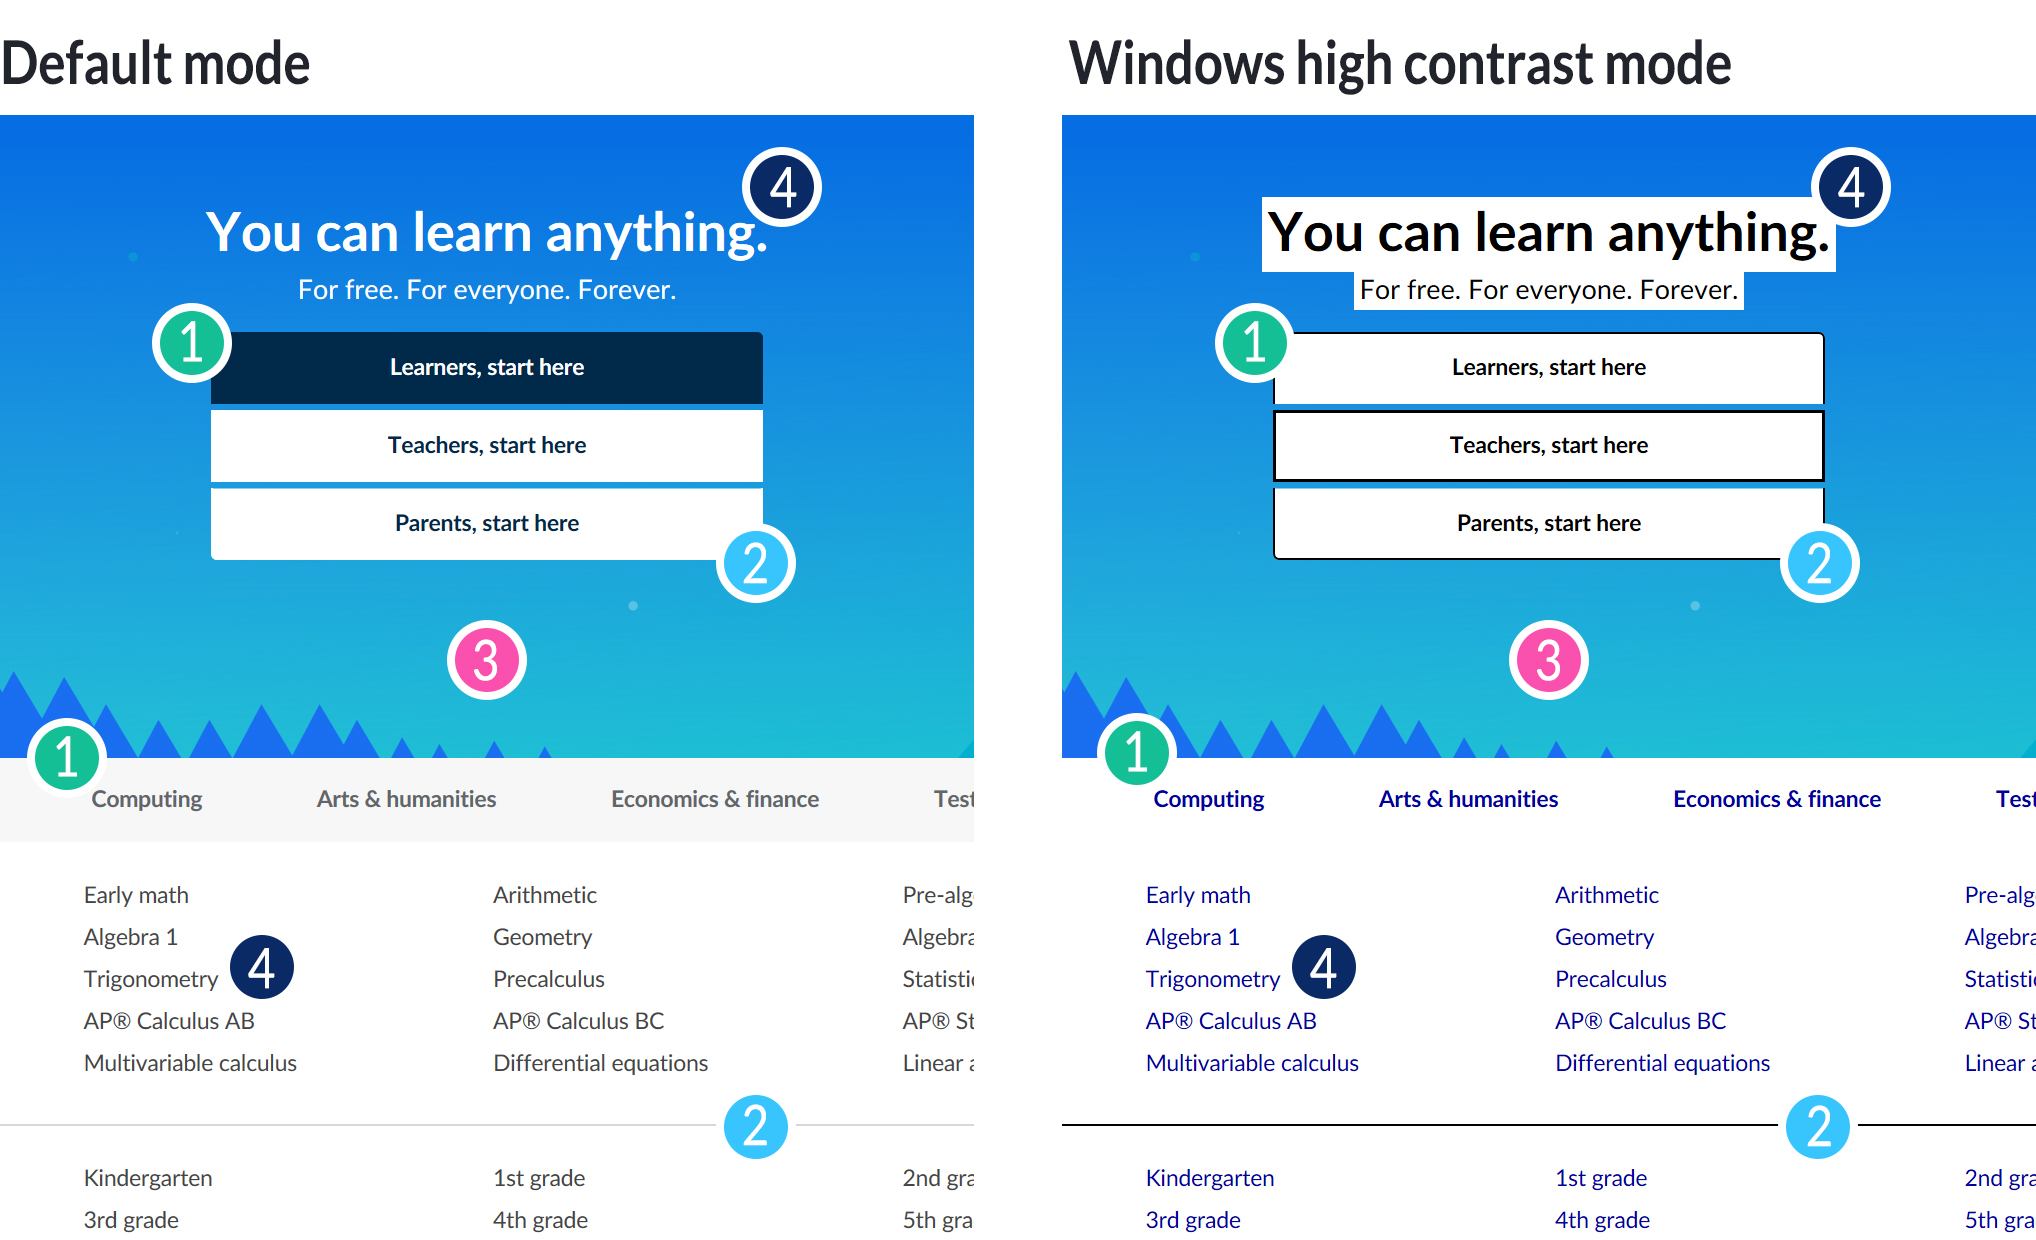 Section of the Khan Academy logged out homepage shown in two versions side by side. On the left side is the default mode, and on the right side is the Windows High Contrast Mode. The section shown includes a button that reads 'Learners, start here'. In the default version, the button has a dark blue background, white text, and no visible outline. In the Windows High Contrast Mode version, the button has a white background, black text, and a black outline. Behind the button is an image of a sky, which is the same in both versions.